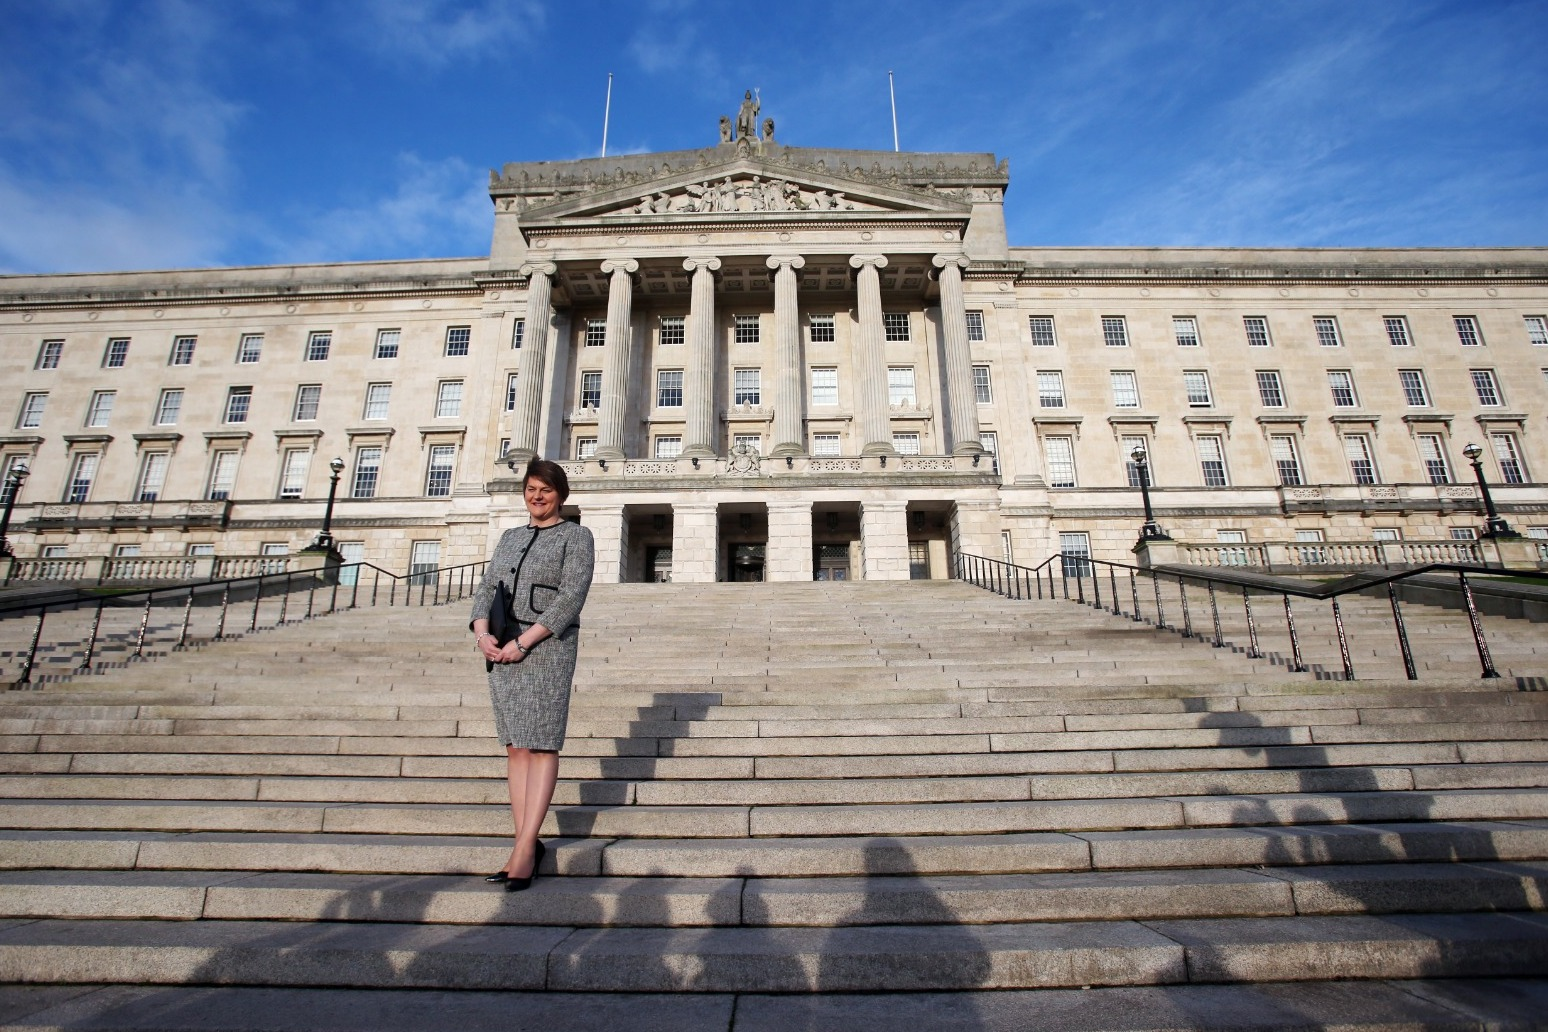 Serving NI was 'privilege of my life', says resigning Foster